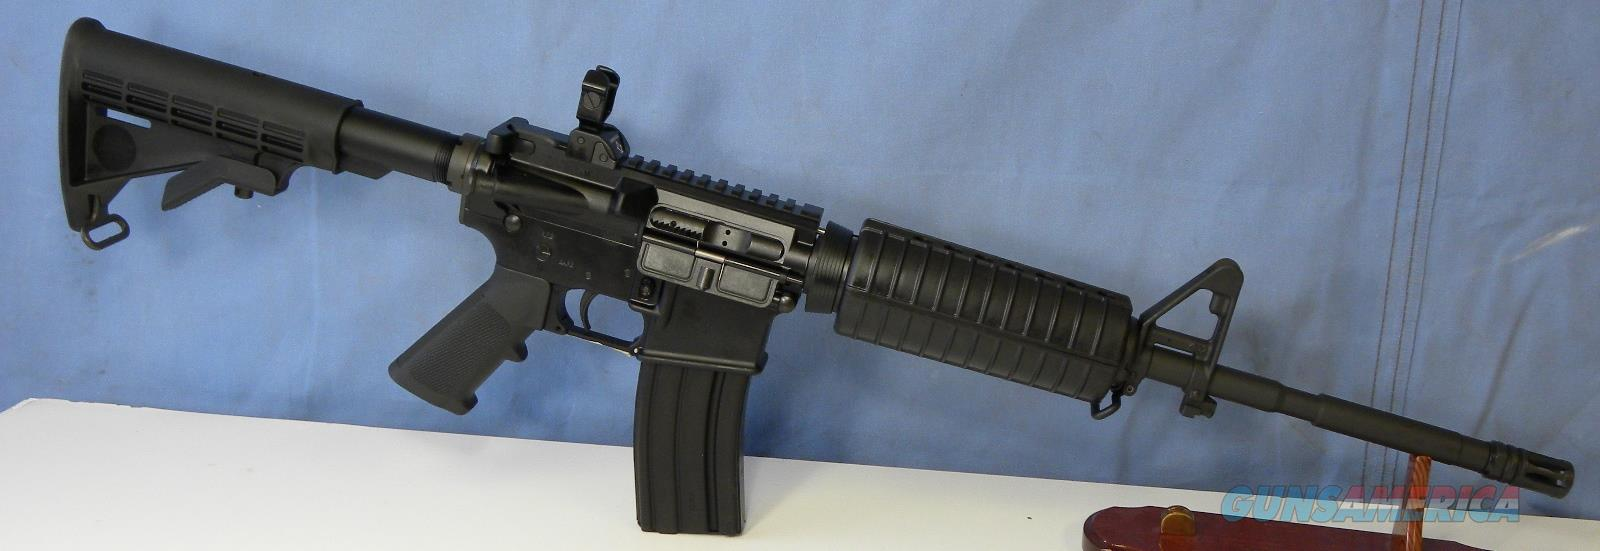 Windham Weaponry R16M4LHRFT  Guns > Rifles > Windham Weaponry Rifles